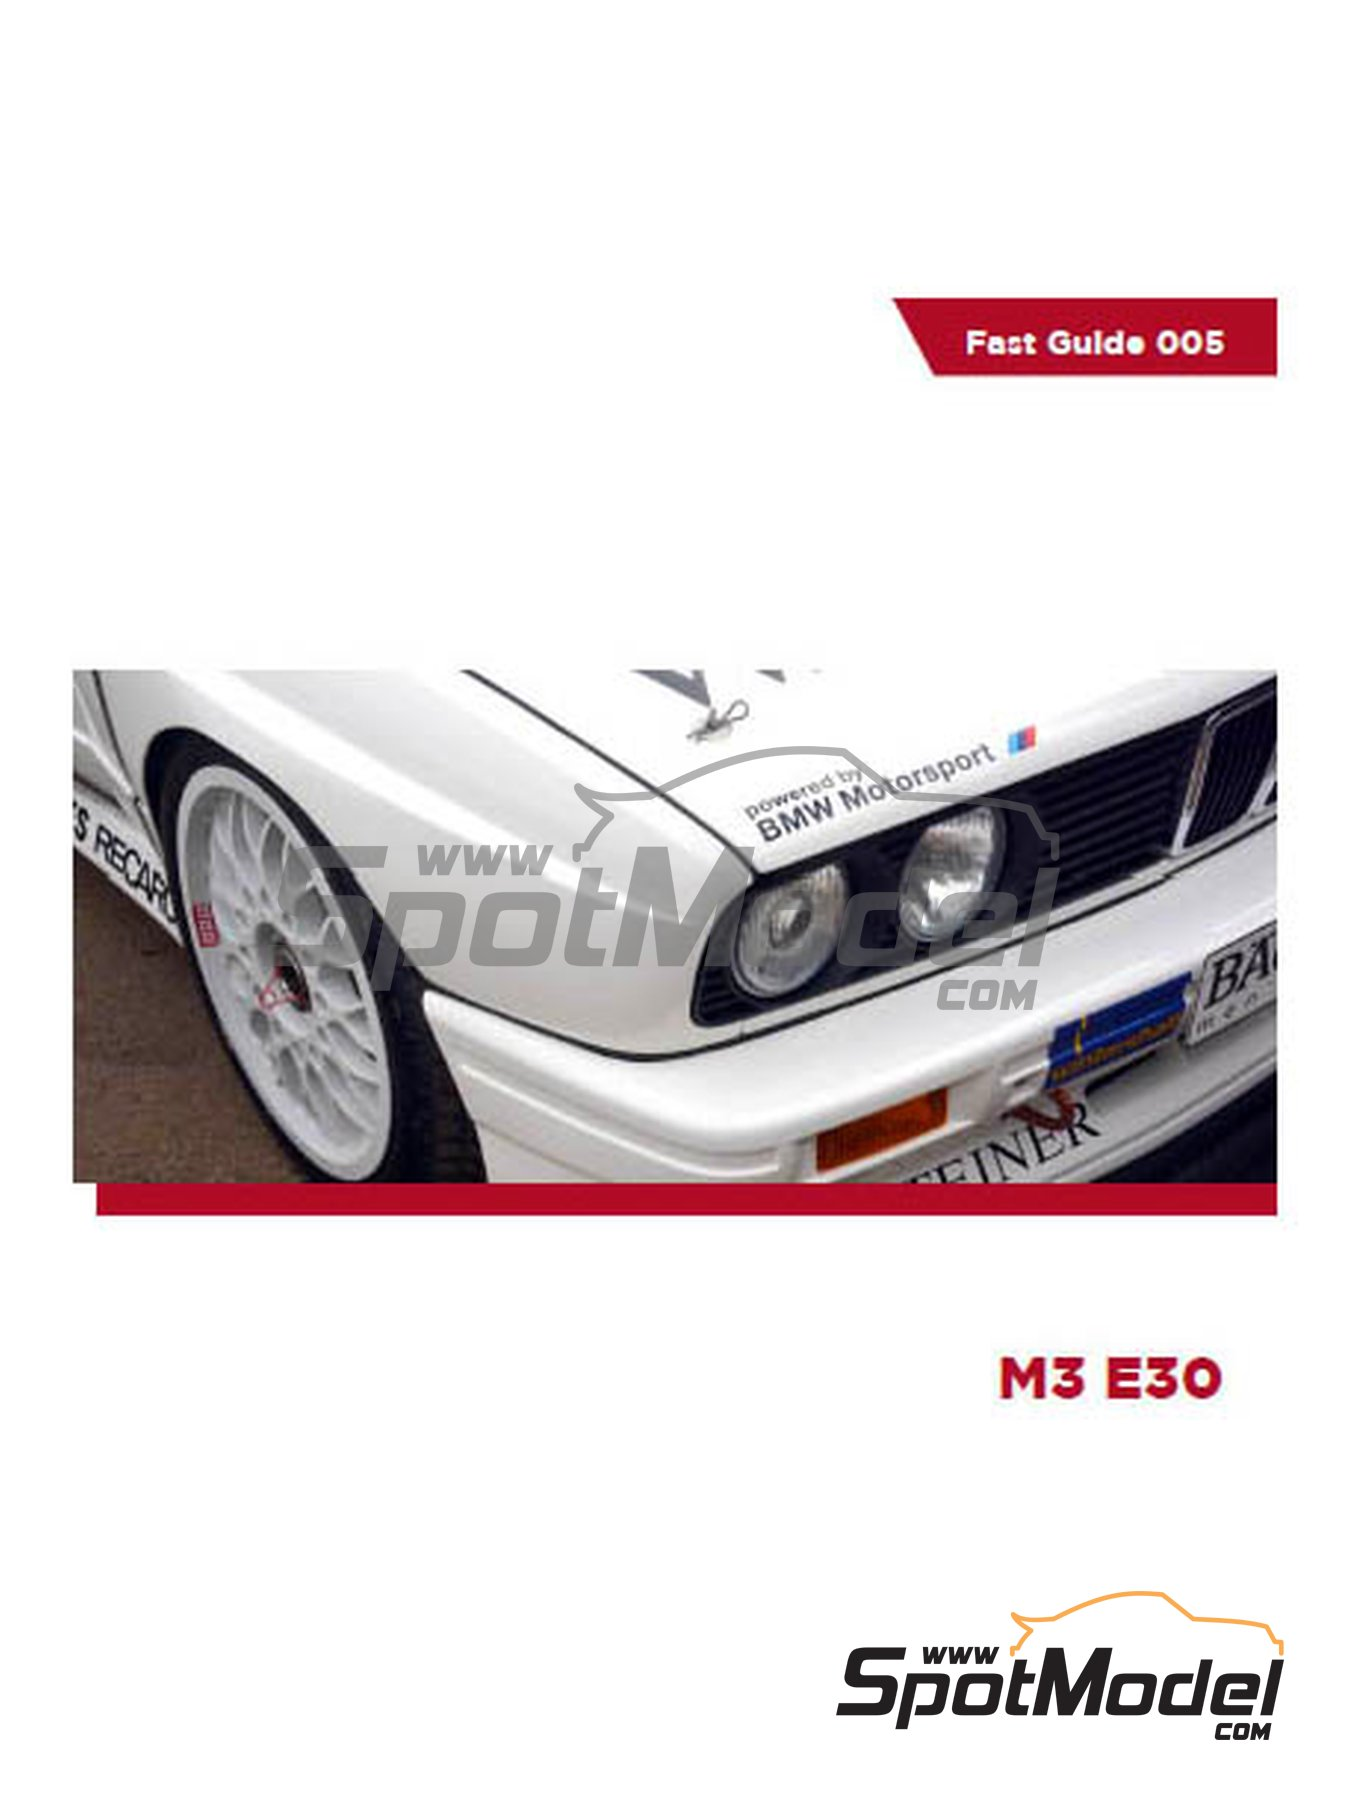 BMW M3 E30 - DTM | Reference / walkaround book manufactured by Komakai (ref. KOM-FG005) image